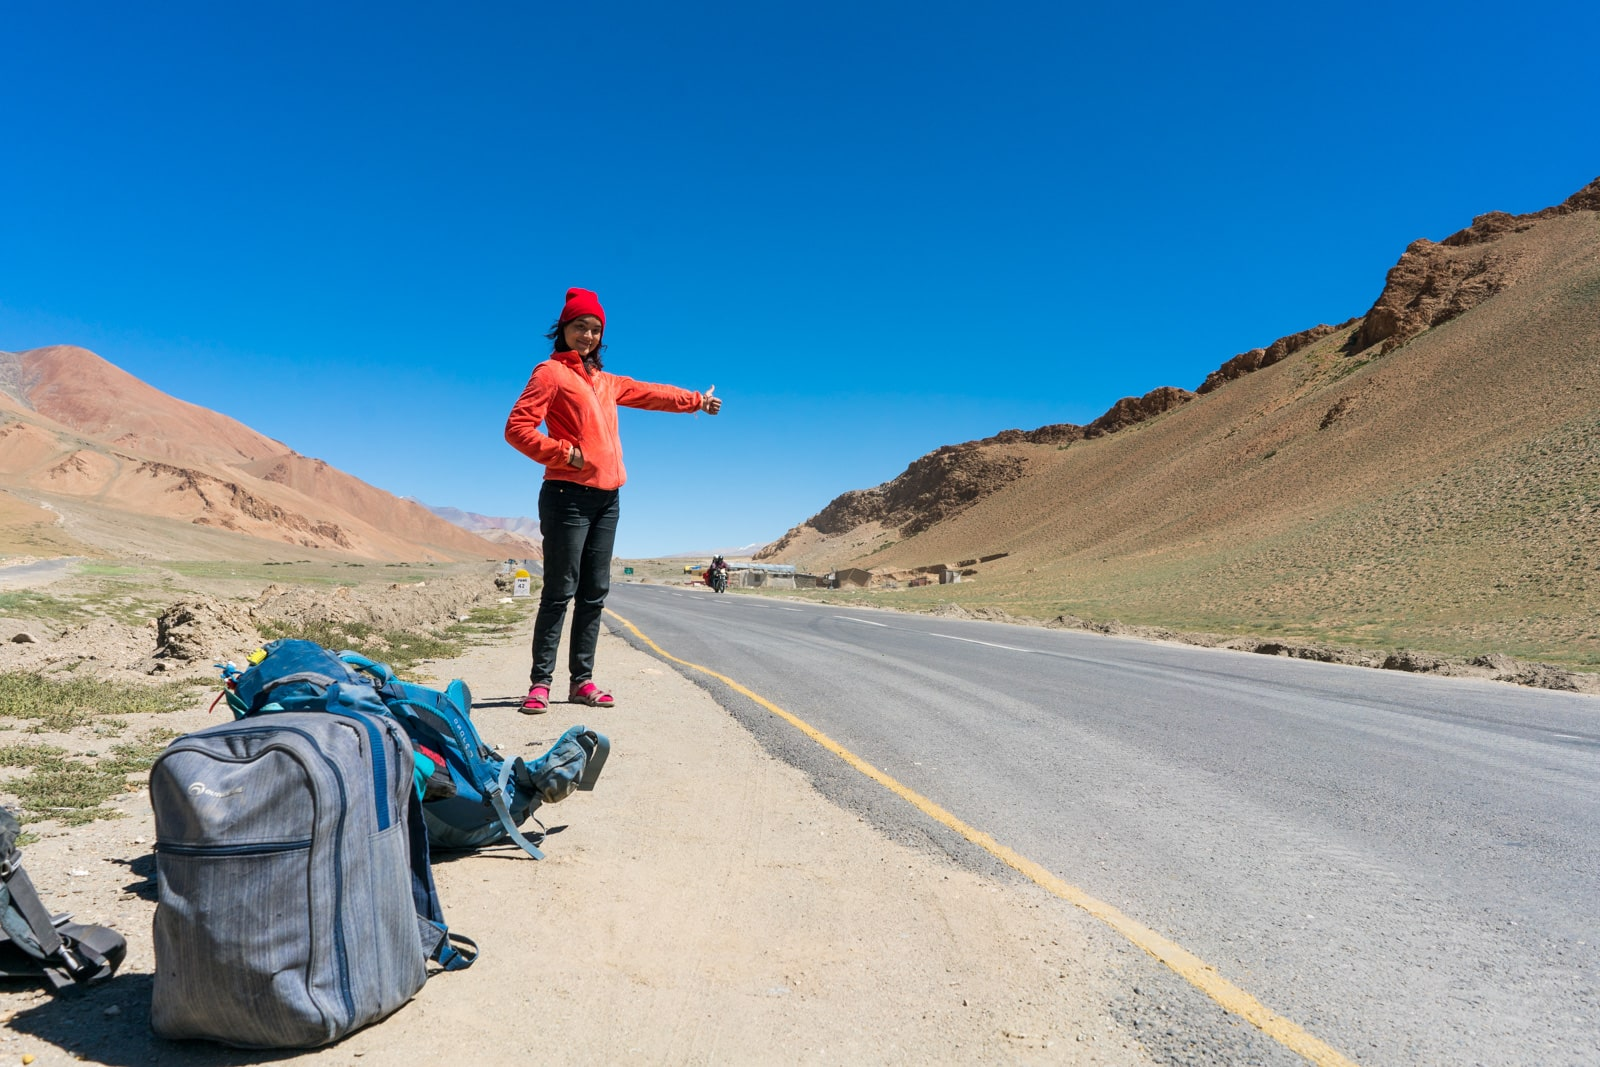 Why you need to purchase travel insurance for your next trip - Hitchhiking in Ladakh - Lost With Purpose travel blog